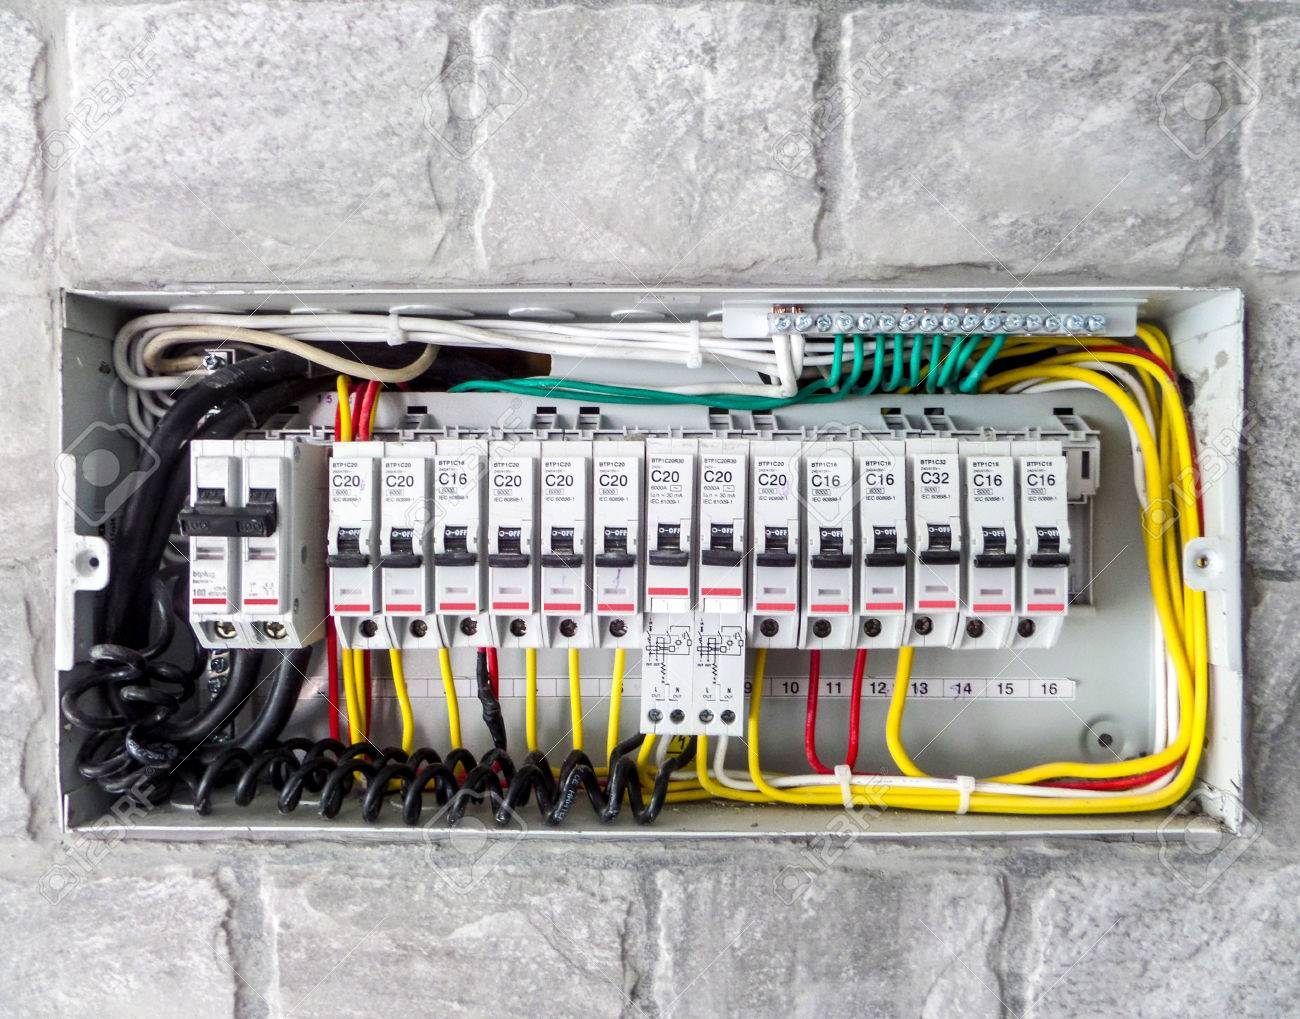 hight resolution of electric main box in the house set up to control and service stock photo 43021973